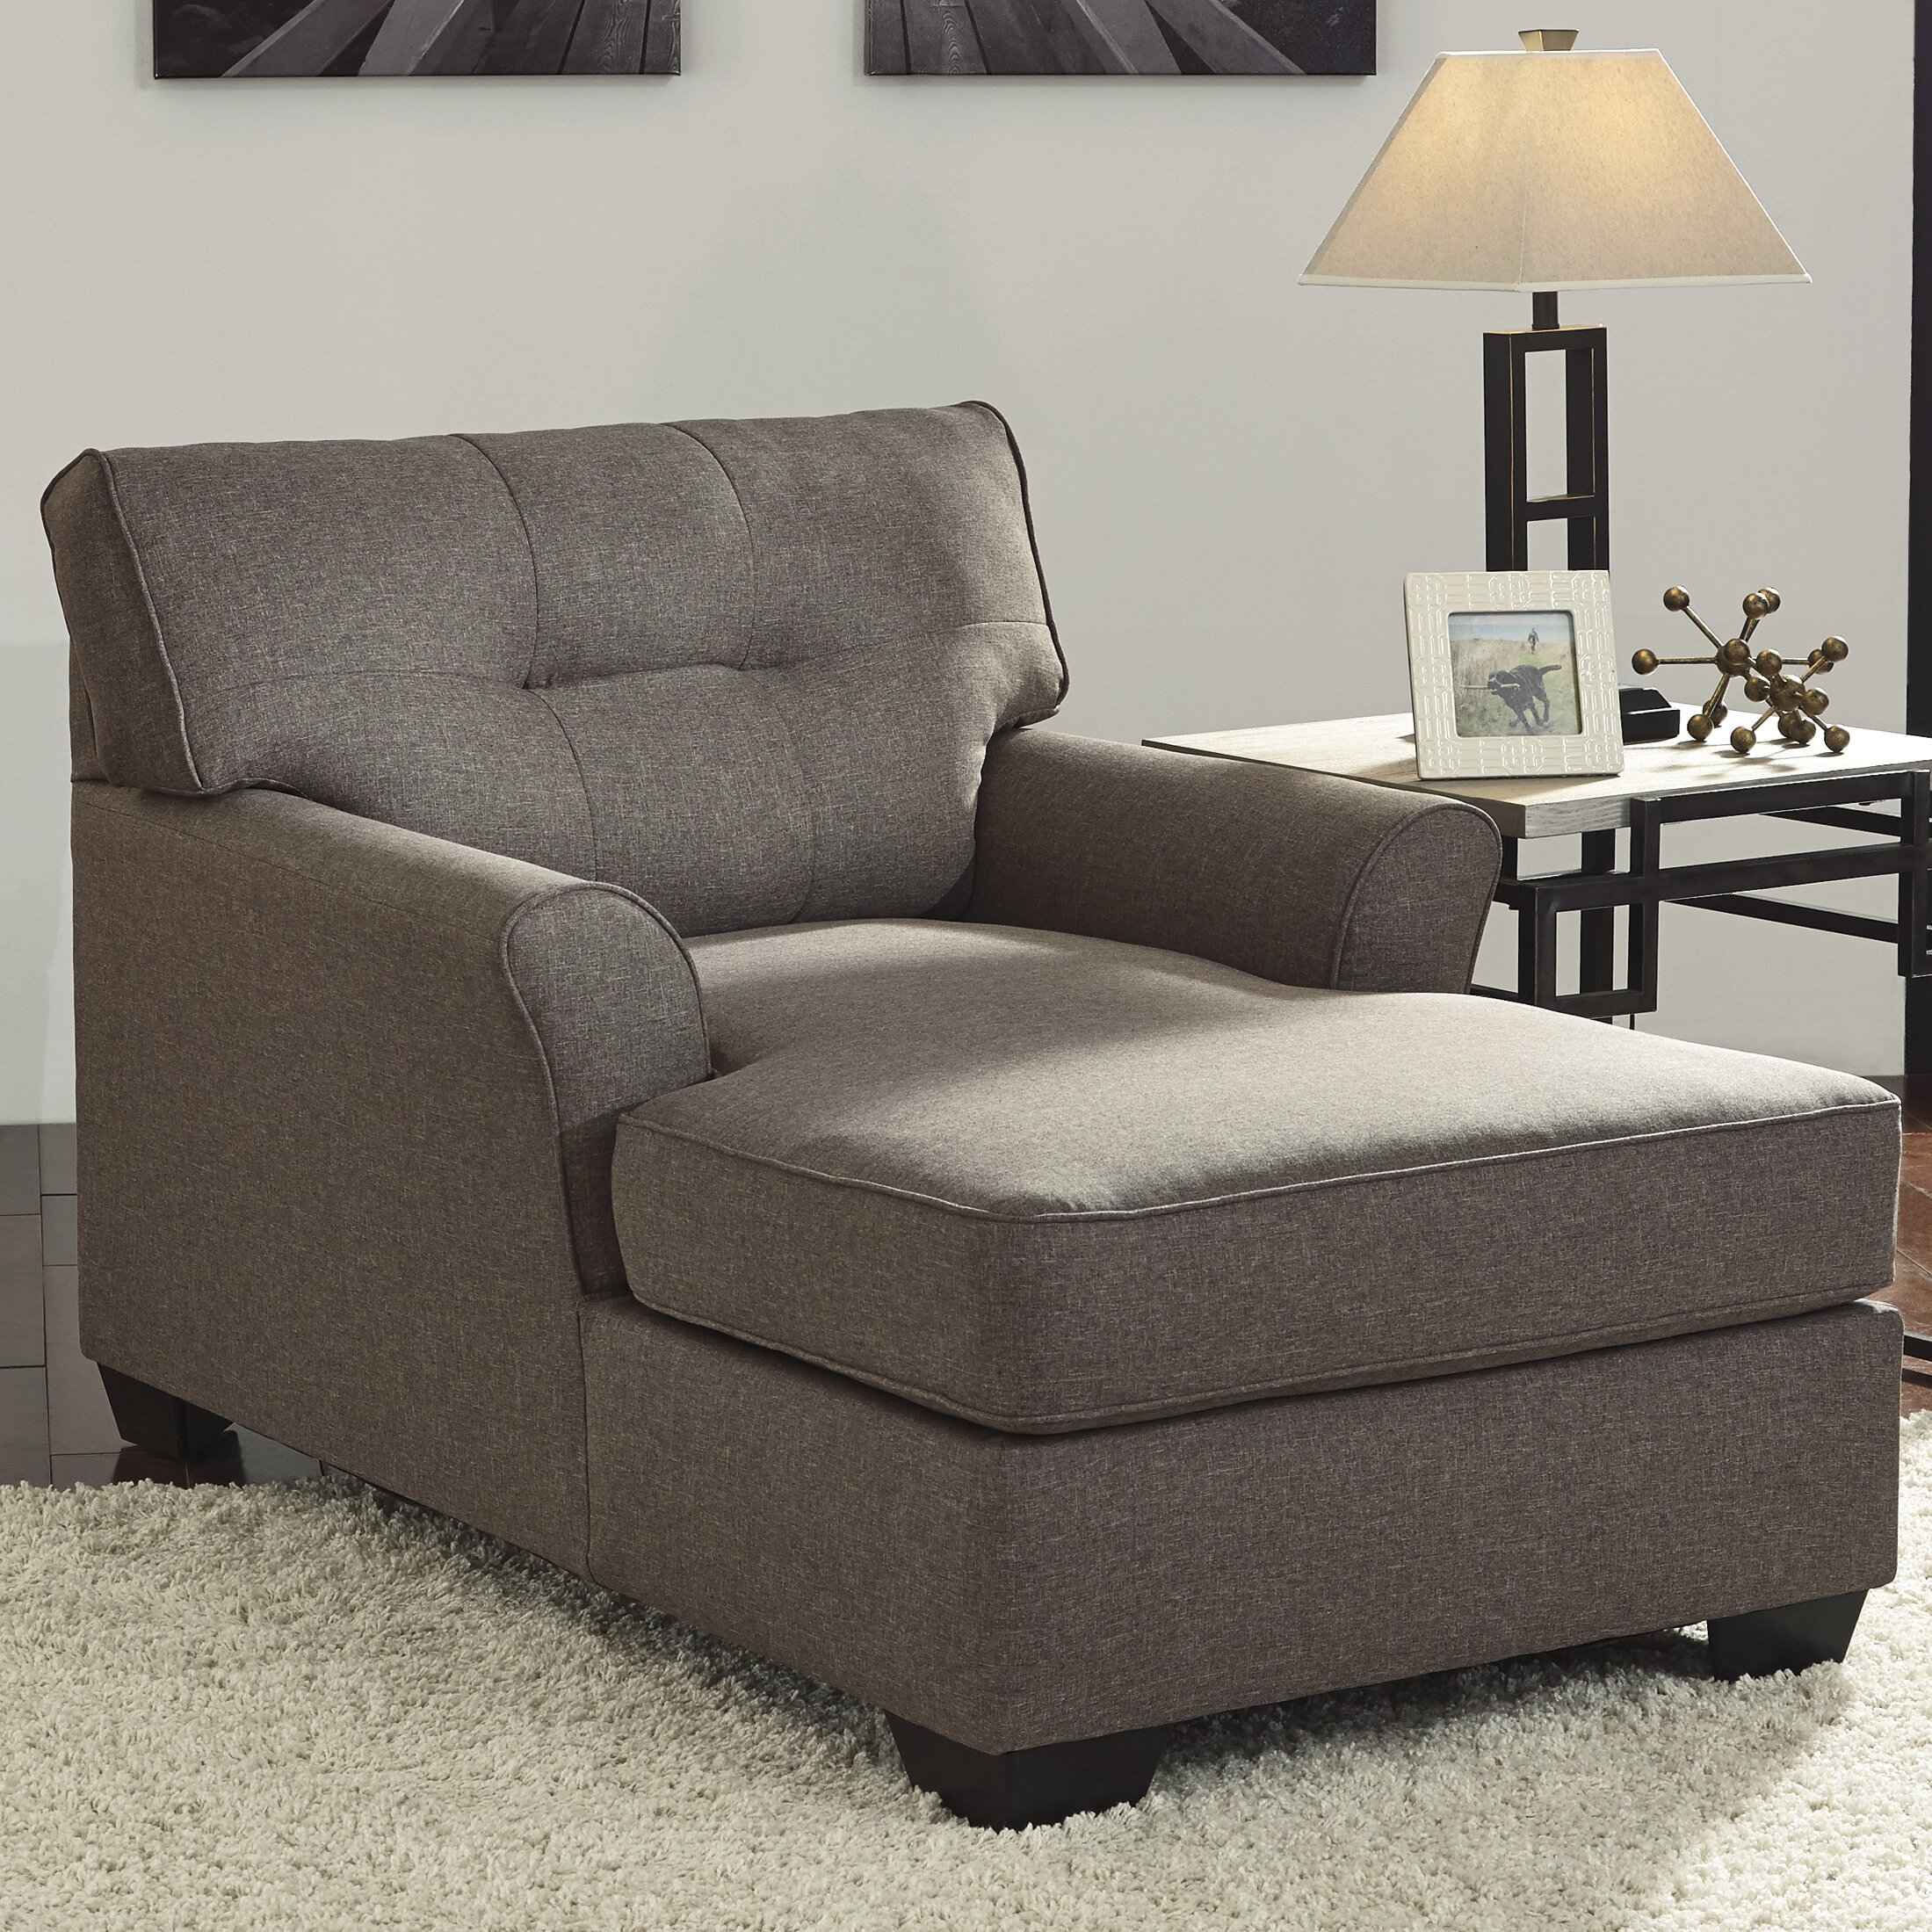 Signature design by ashley tibbee chaise lounge reviews for Chaise furniture